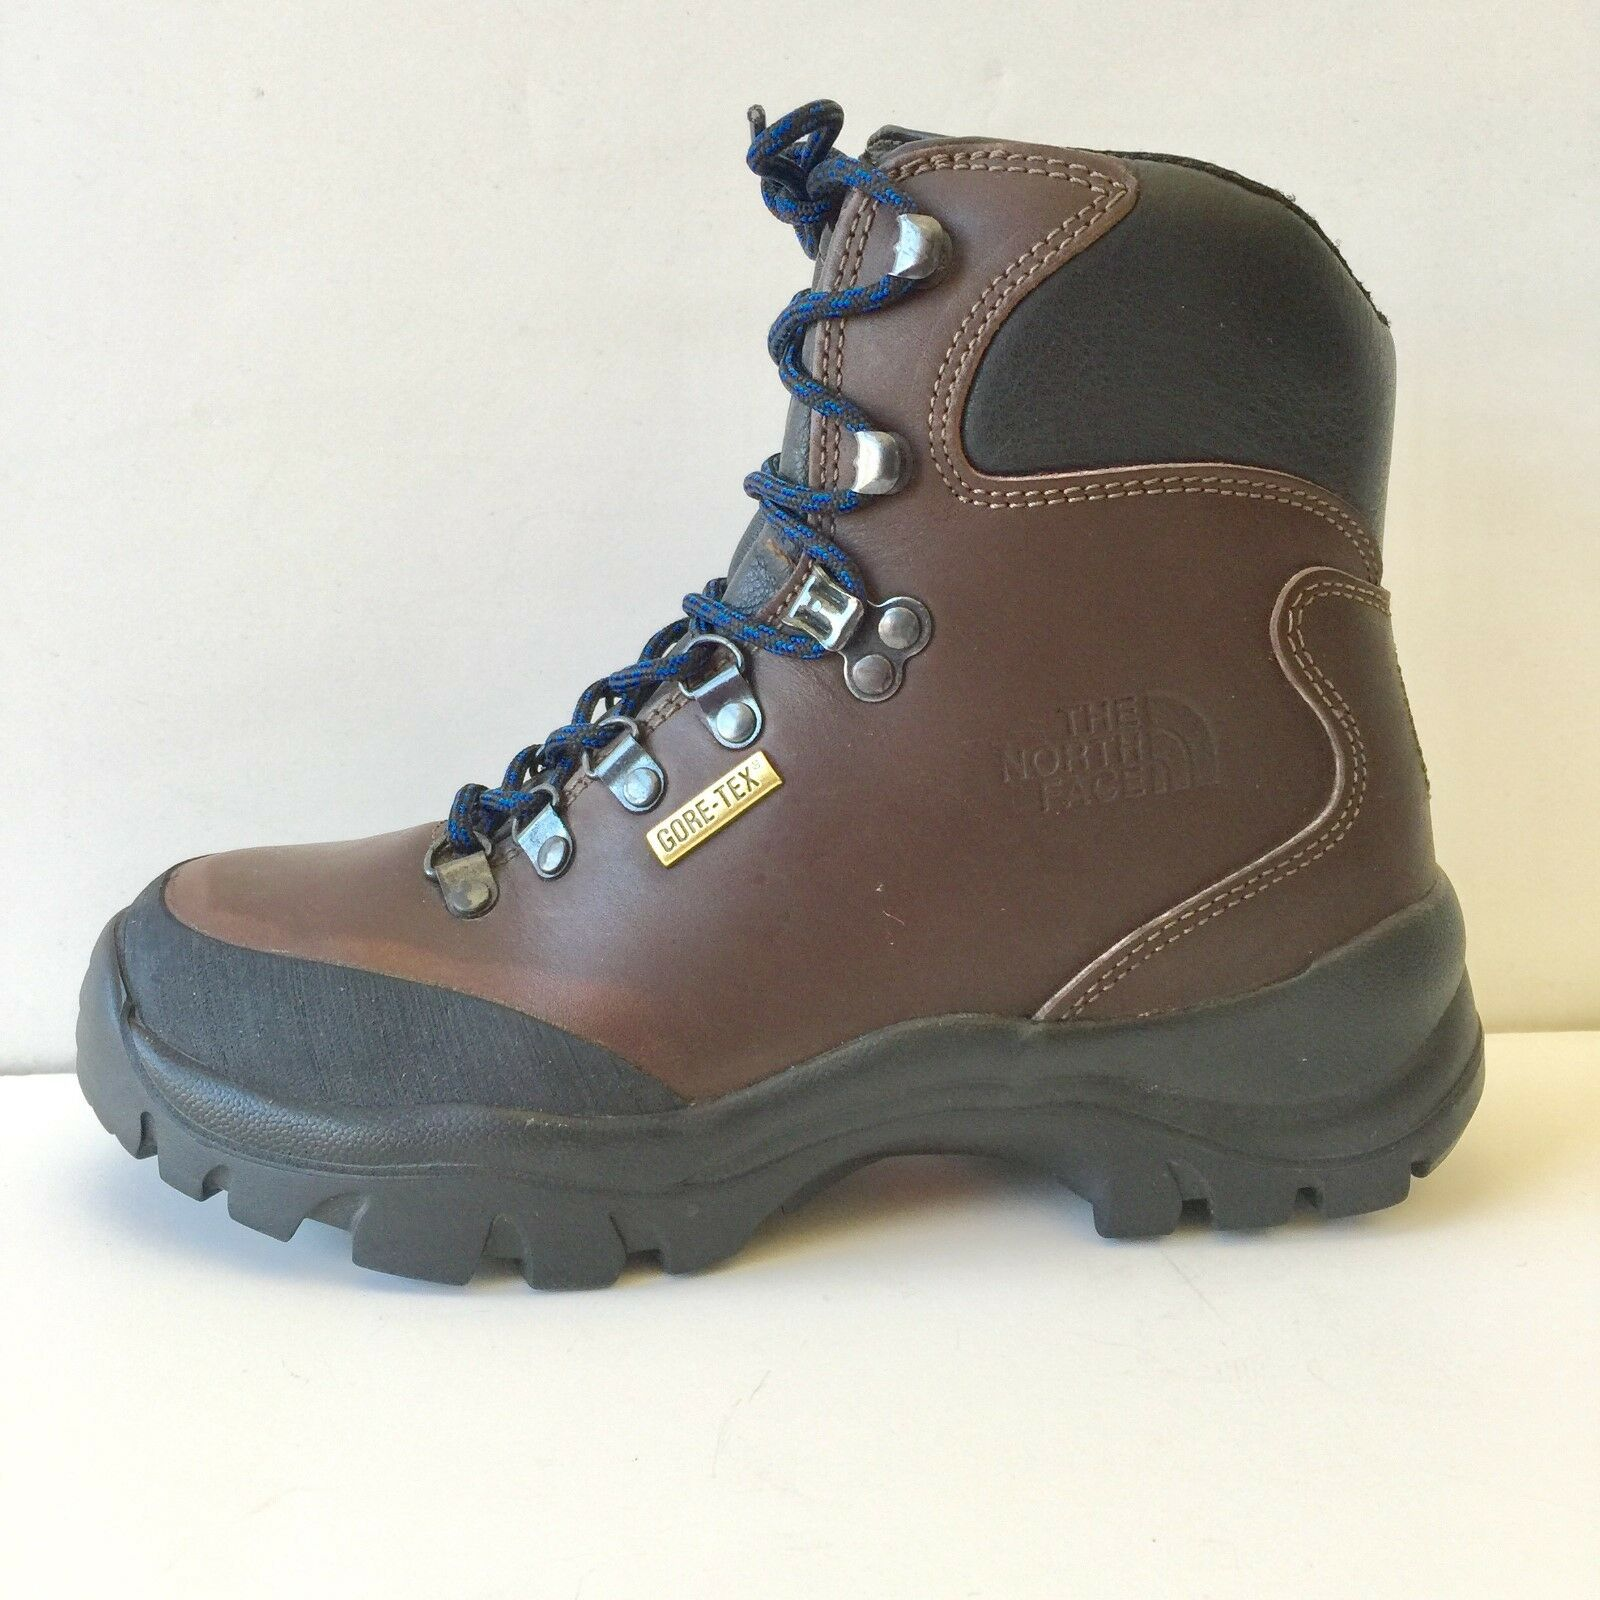 NORTH FACE HIKING BOOT WOMEN 6 GORE-TEX WATERPROOF BROWN LEATHER  INSULATED SNOW  quick answers